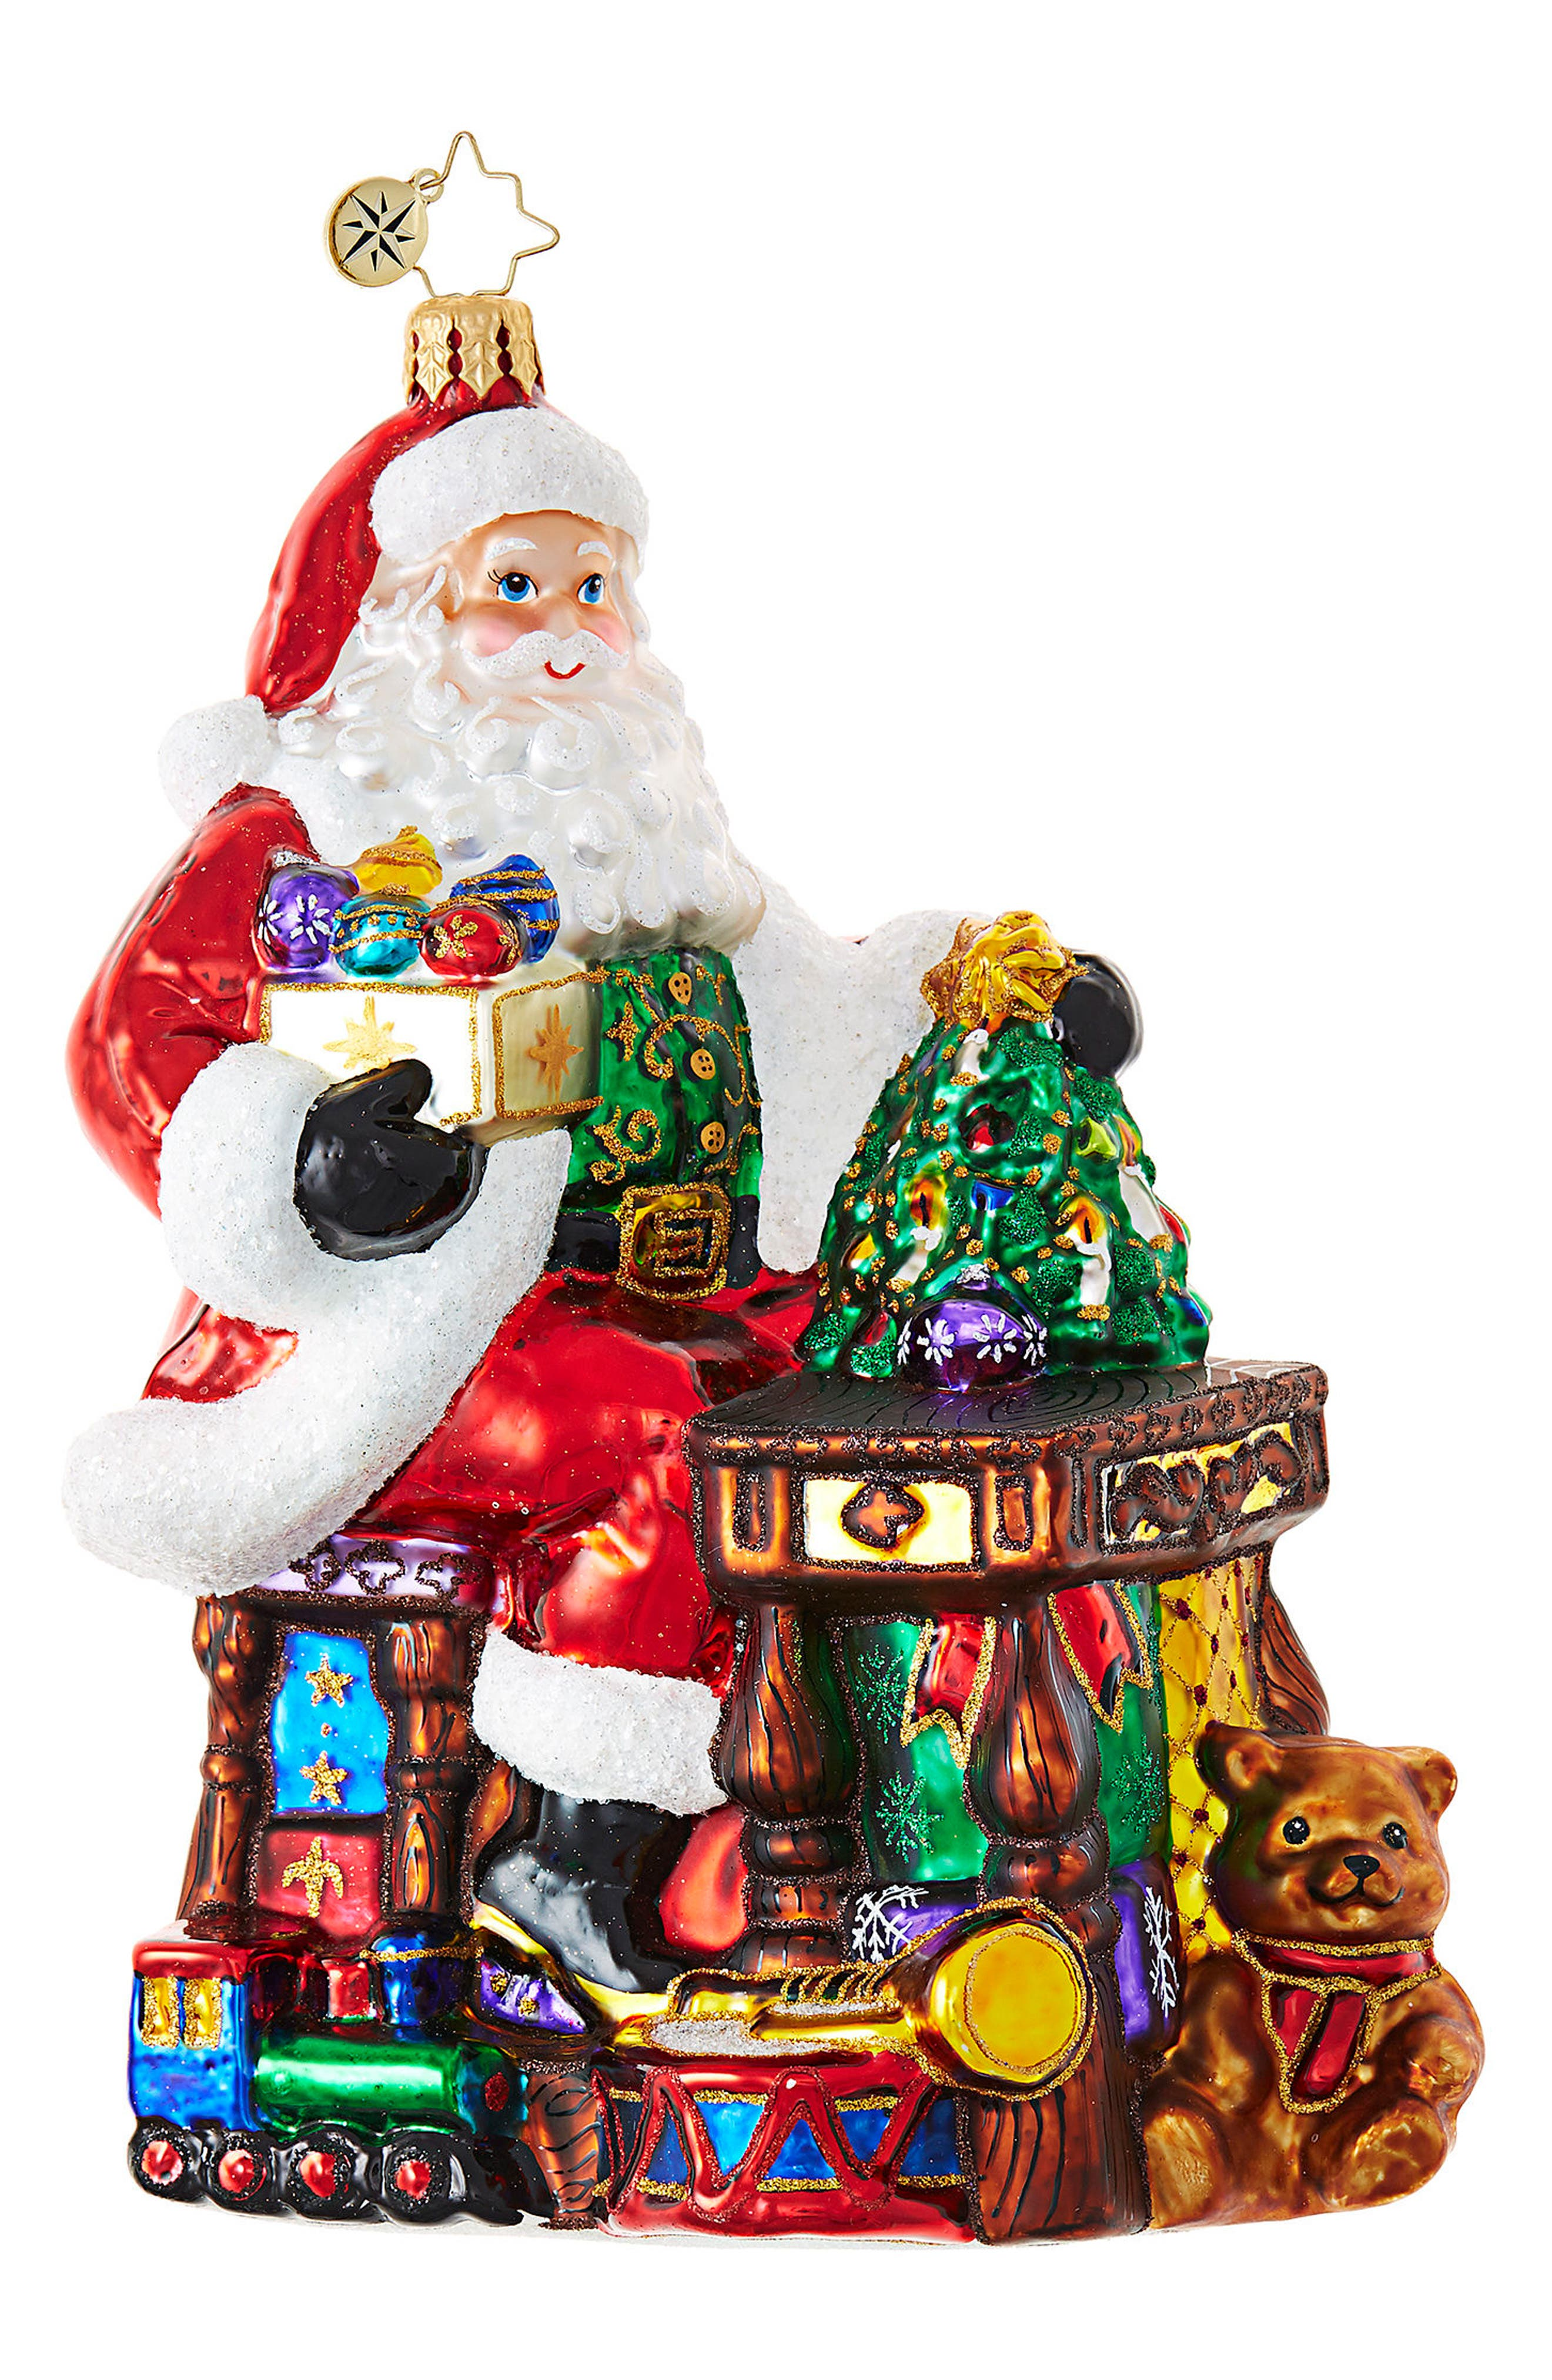 Santa's Toy Shop Ornament,                             Main thumbnail 1, color,                             600